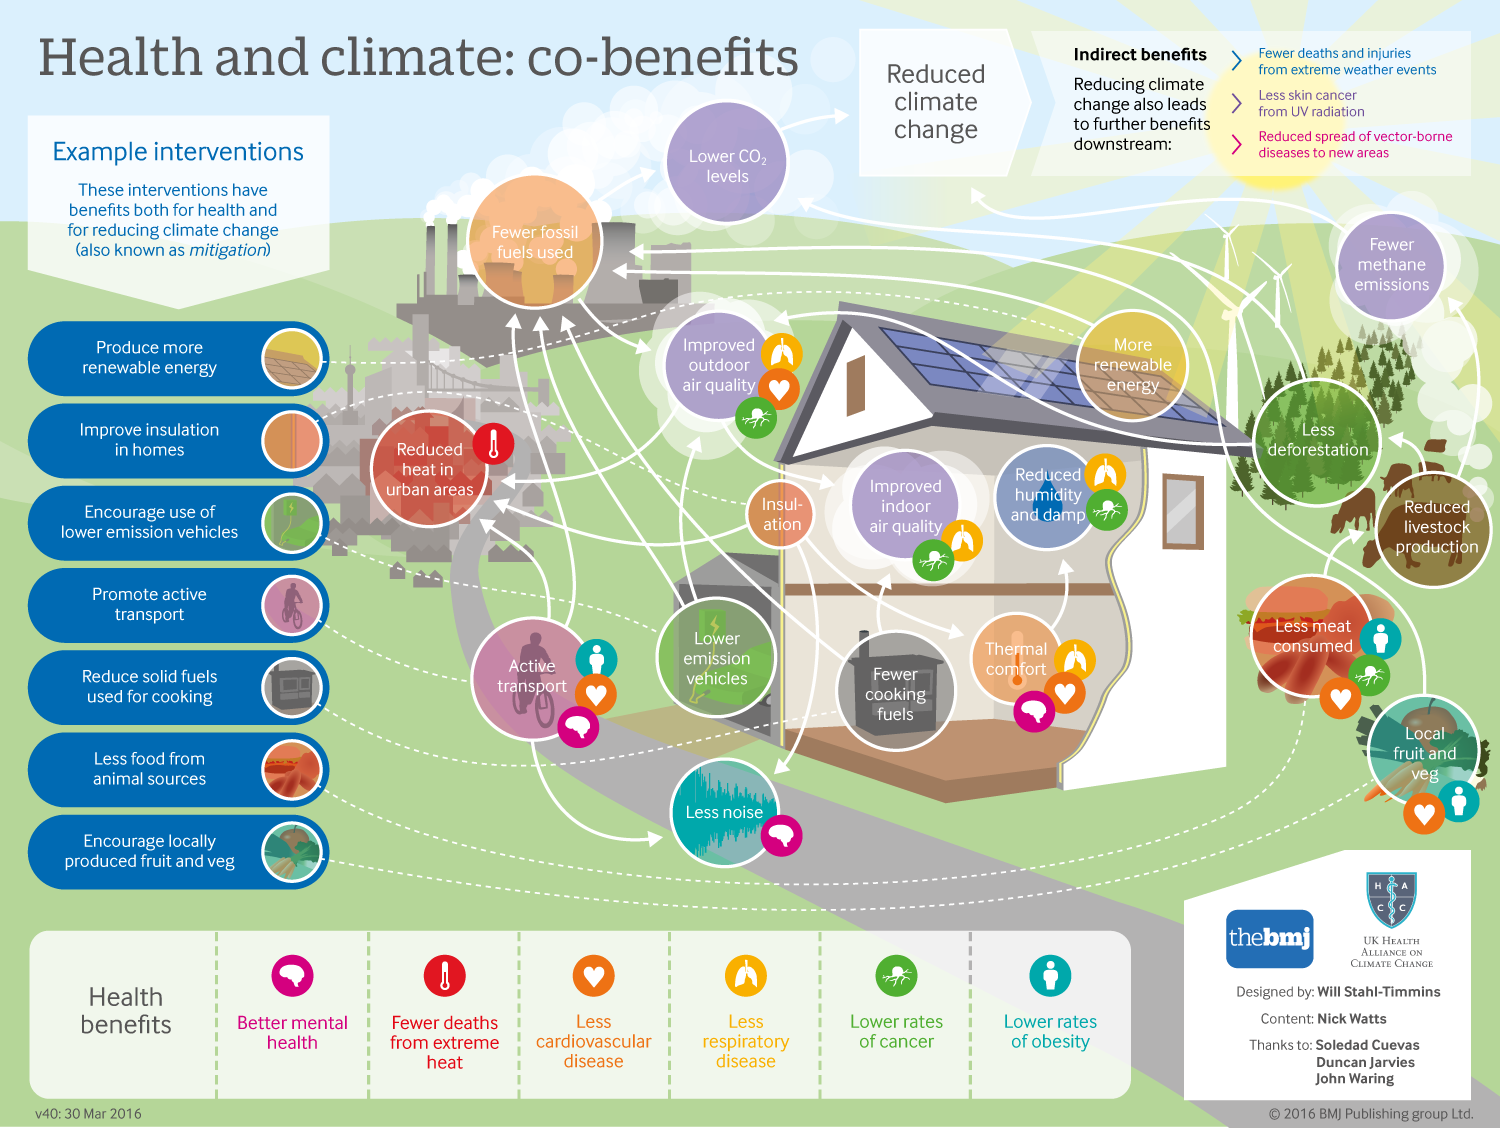 Infographic showing examples of interventions that target both climate and health